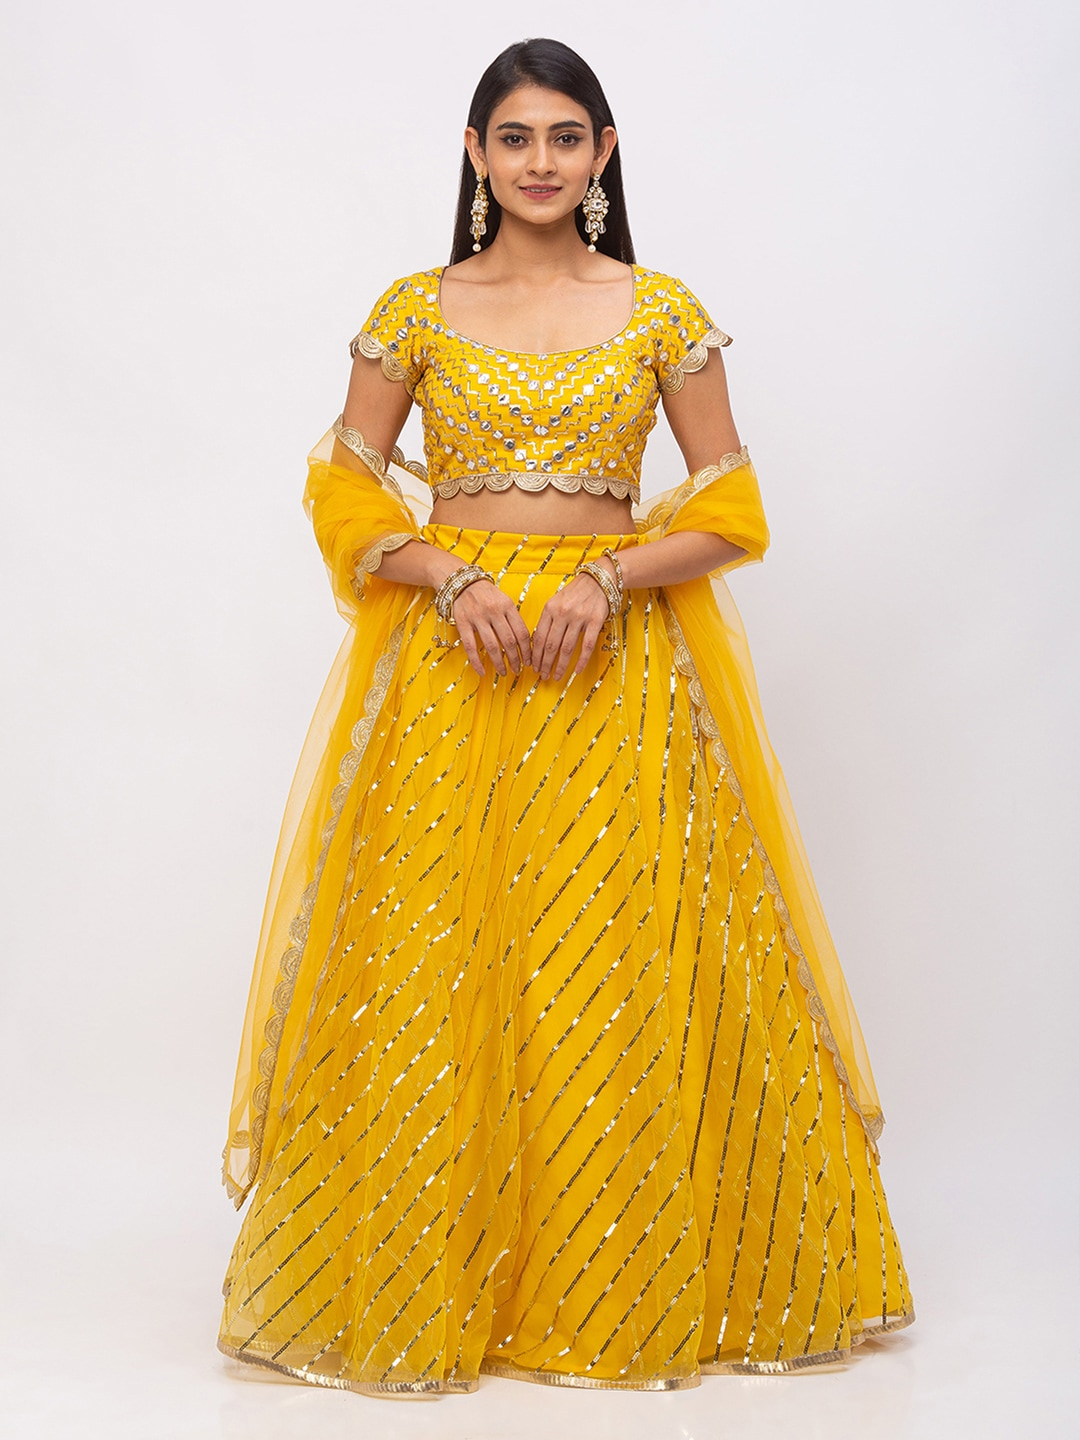 6Y COLLECTIVE Women Mustard Yellow Leheriya Patterned Sequin Embroidered Net Ready to Wear Lehenga & Unstitched Choli with Dupatta